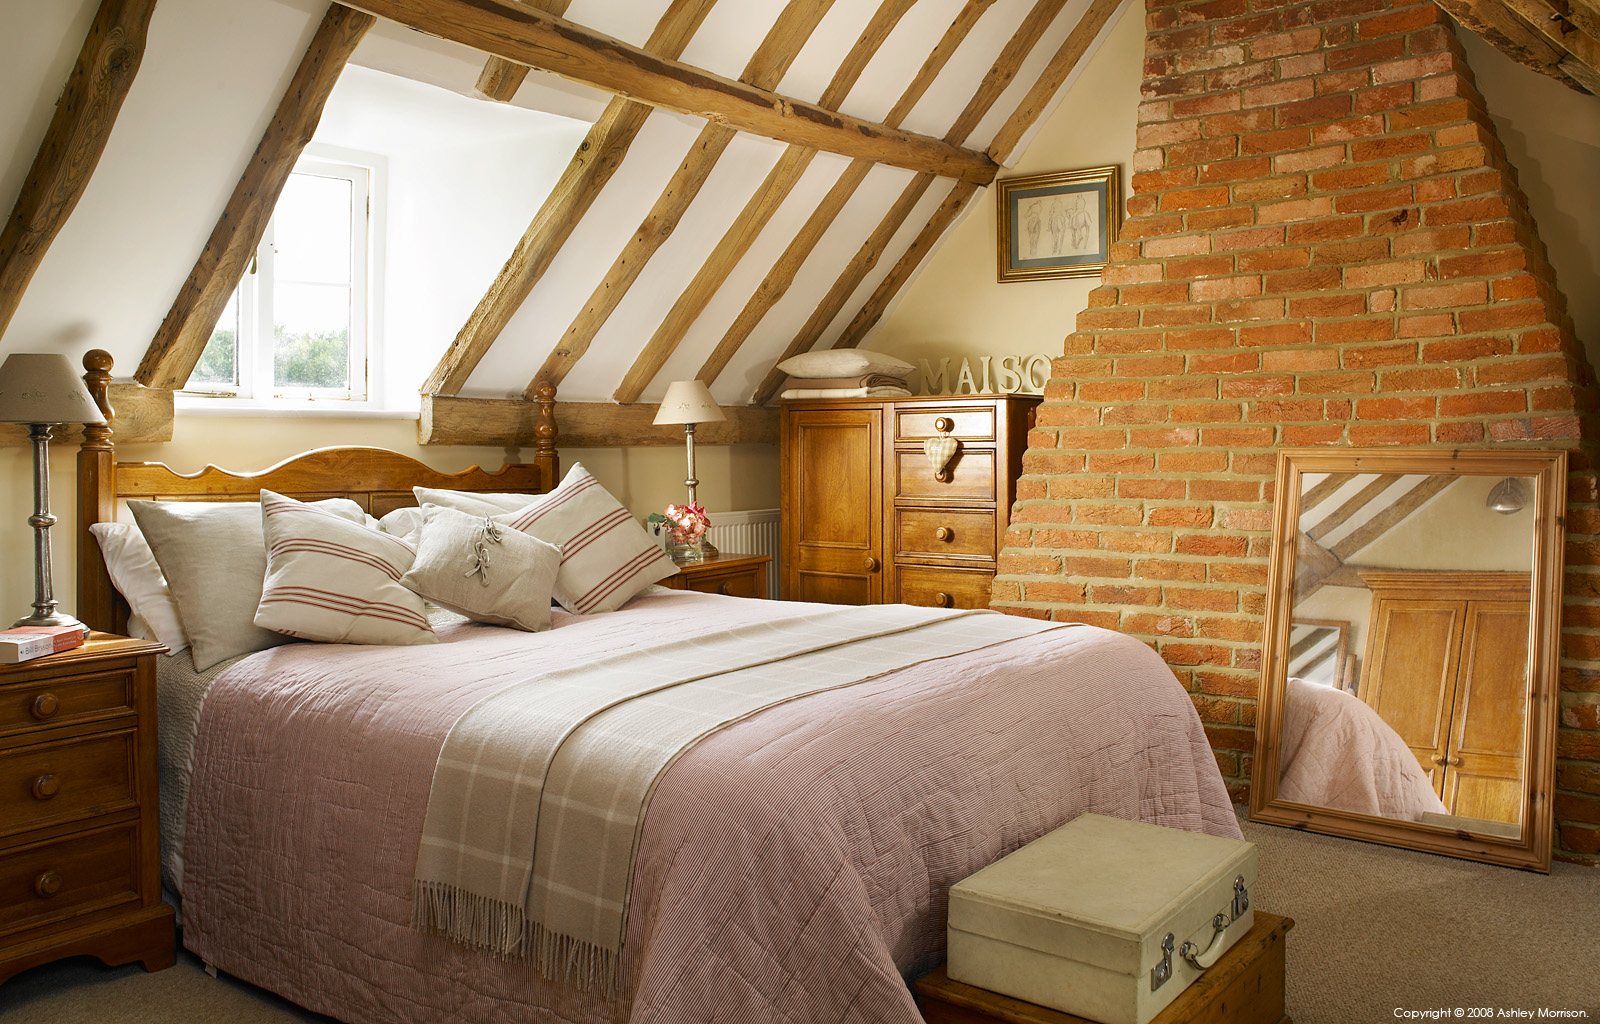 Bedroom in the attic of Tracey & Andy Rosser's cottage near Checkendon in Oxfordshire by Ashley Morrison.